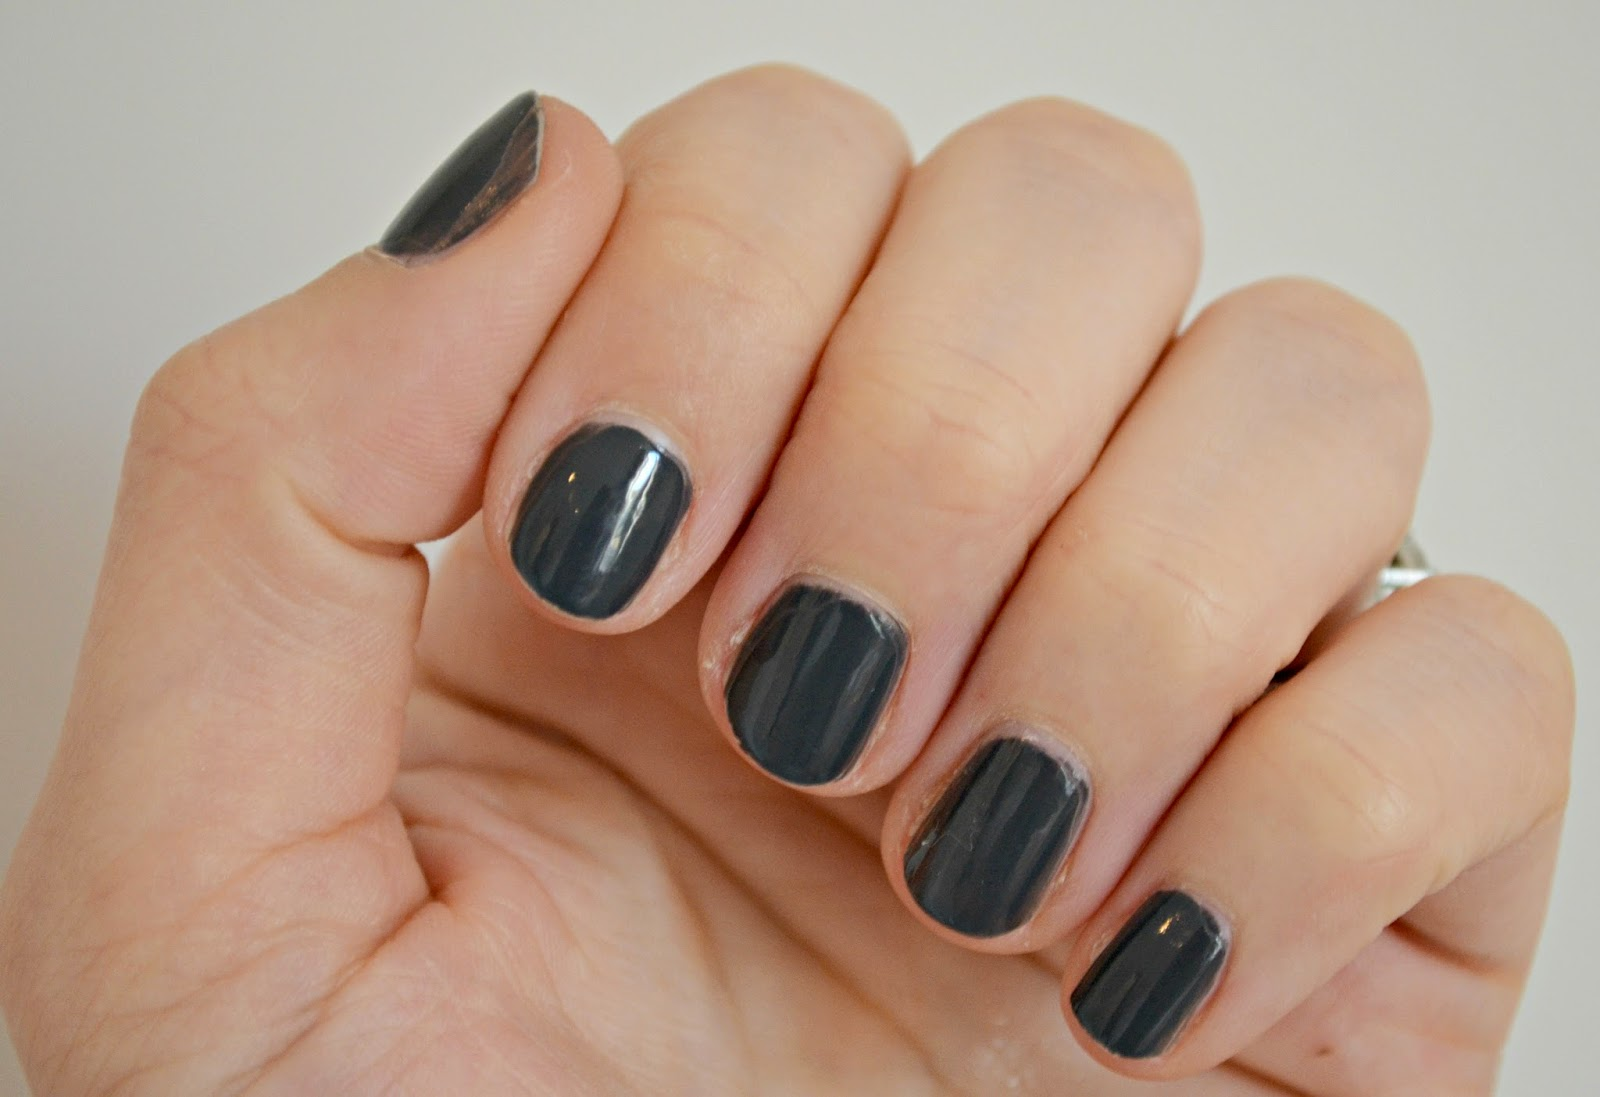 Bourjois Grey To Meet You nails